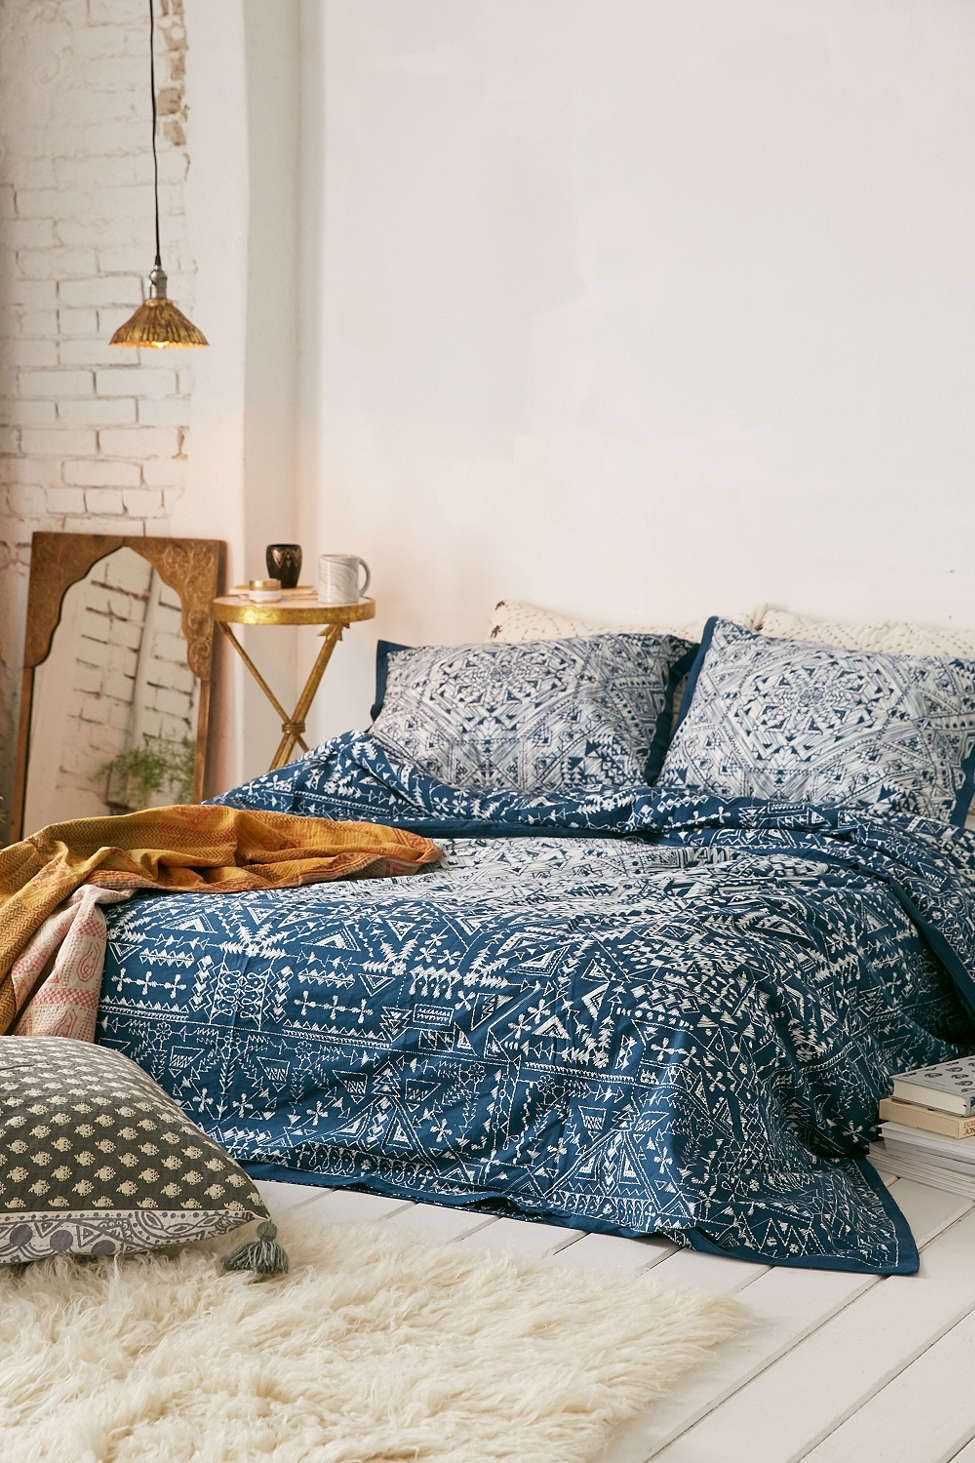 Magical Thinking Izmir Maze Duvet Cover Urban Outfitters Home Bedroom Bedroom Inspirations Bedroom Decor